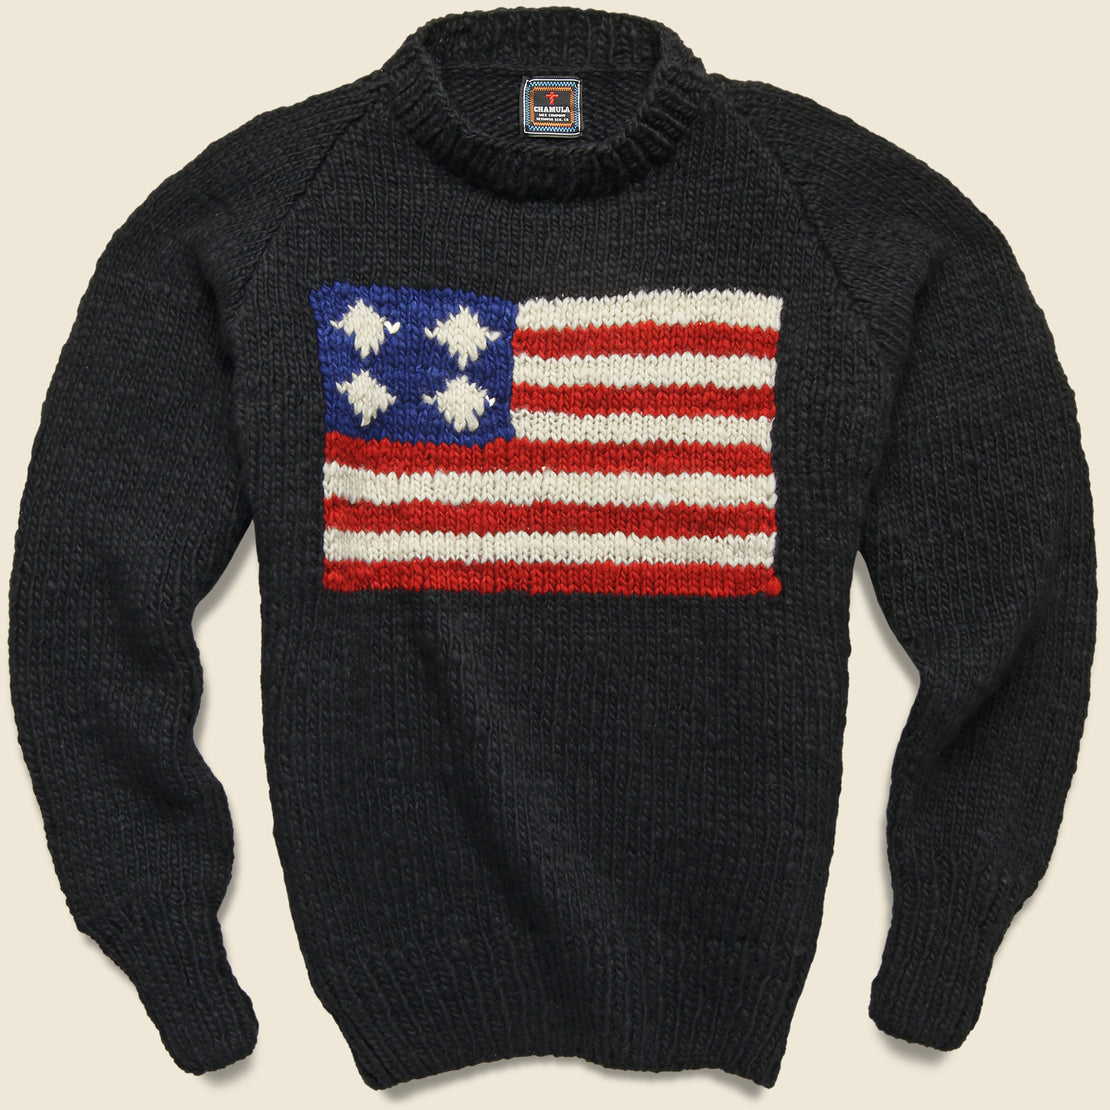 Chamula Flag Pullover Sweater - Black